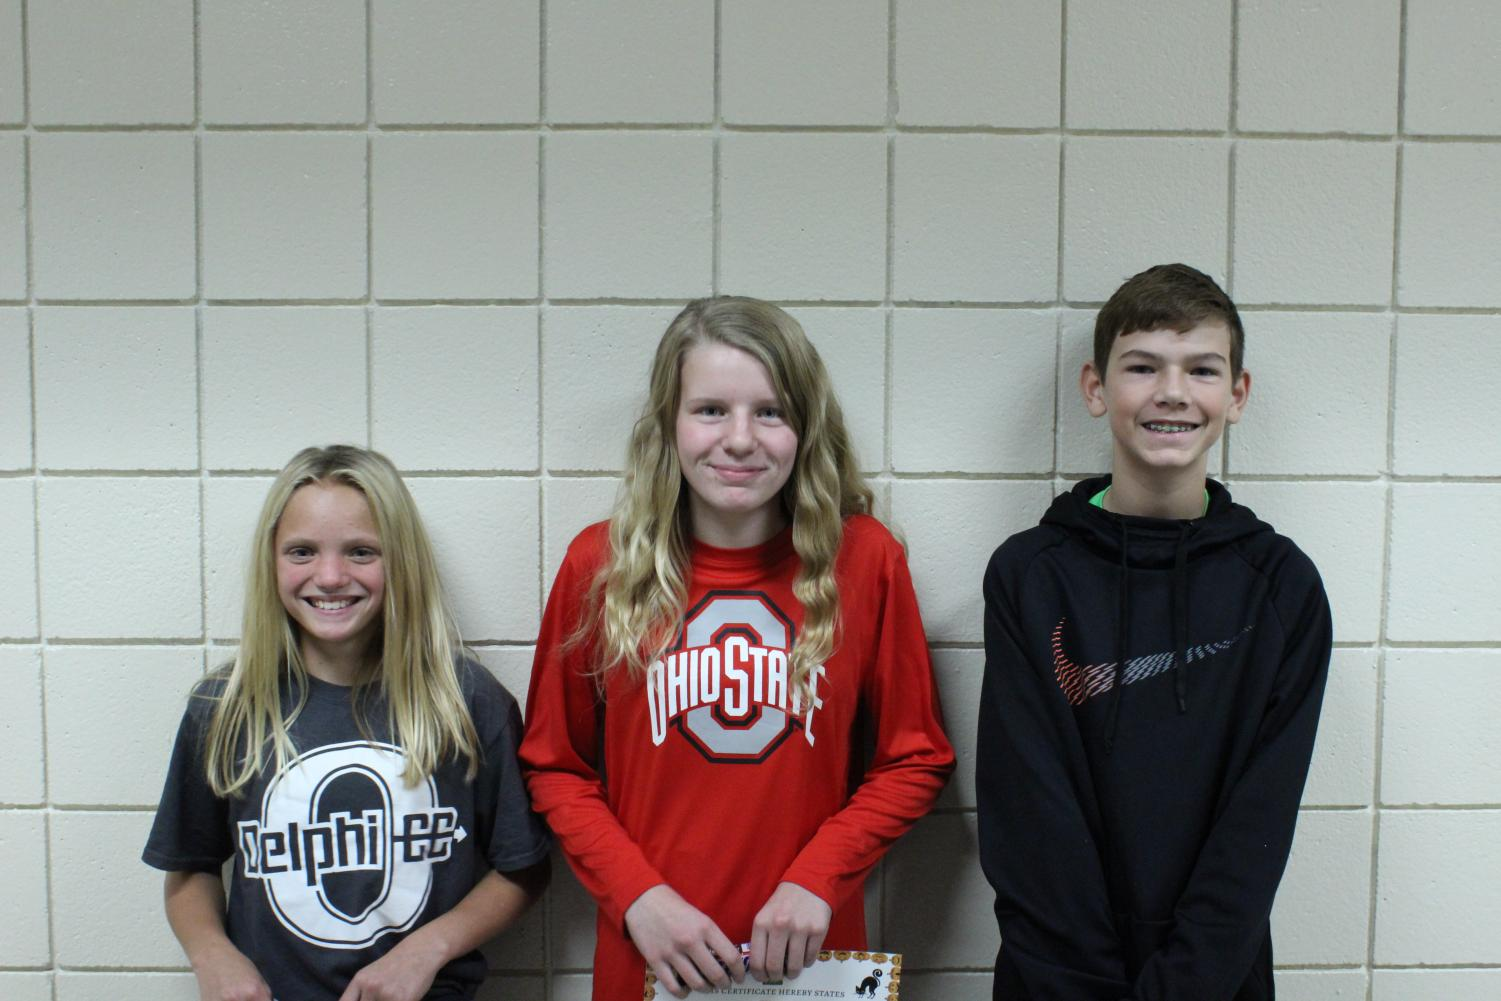 From left: 6th grader Ella Resler, 8th grader Jaden McGuire, and 7th grader Brasen Starbuck